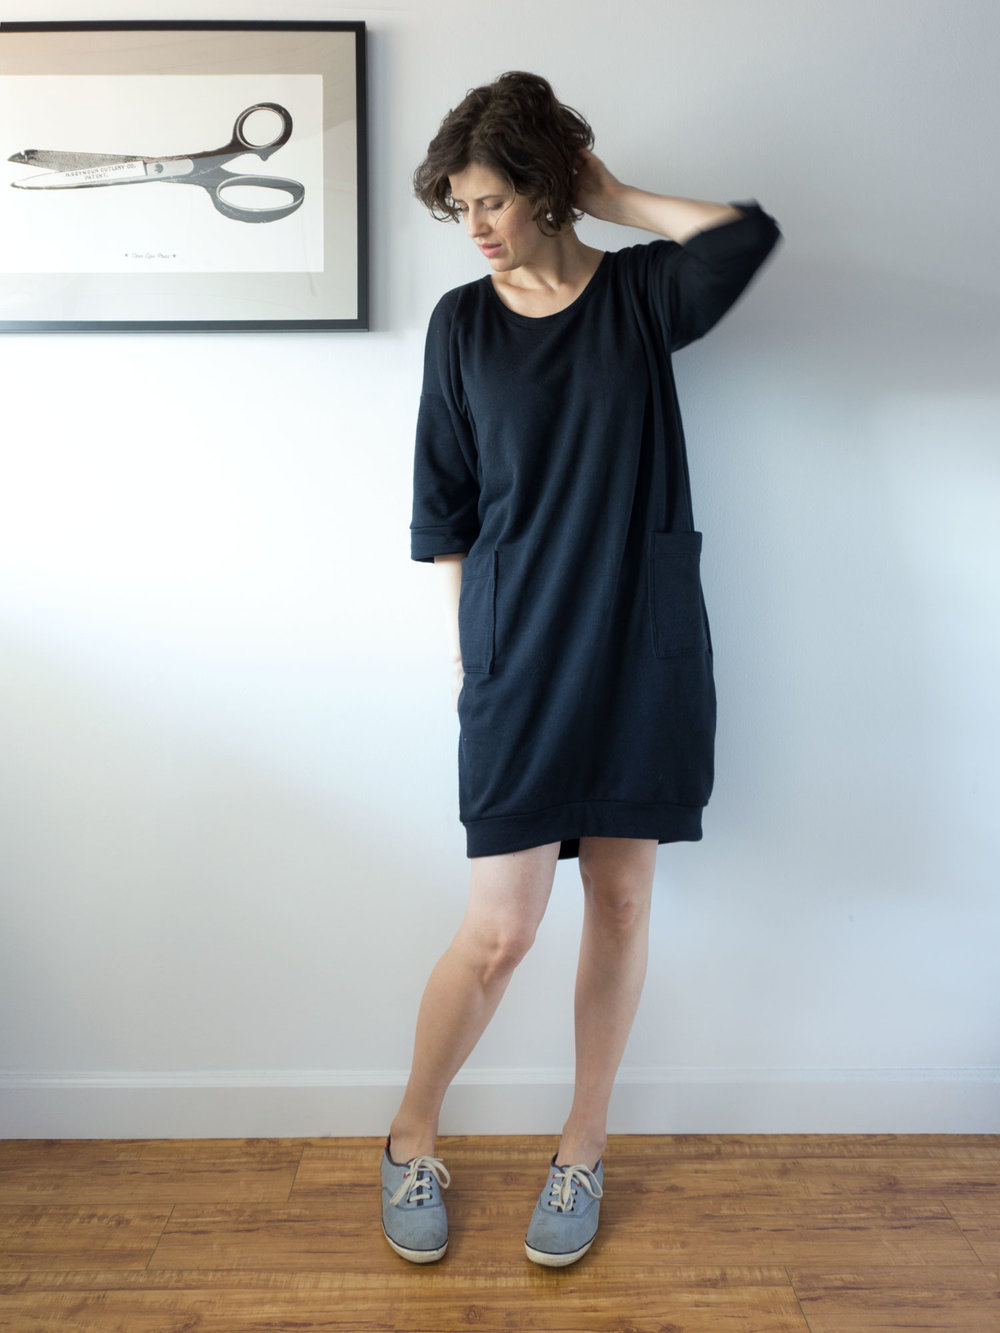 Black Sweatshirt Dress – Lou Box Dress 1 | Sew DIY